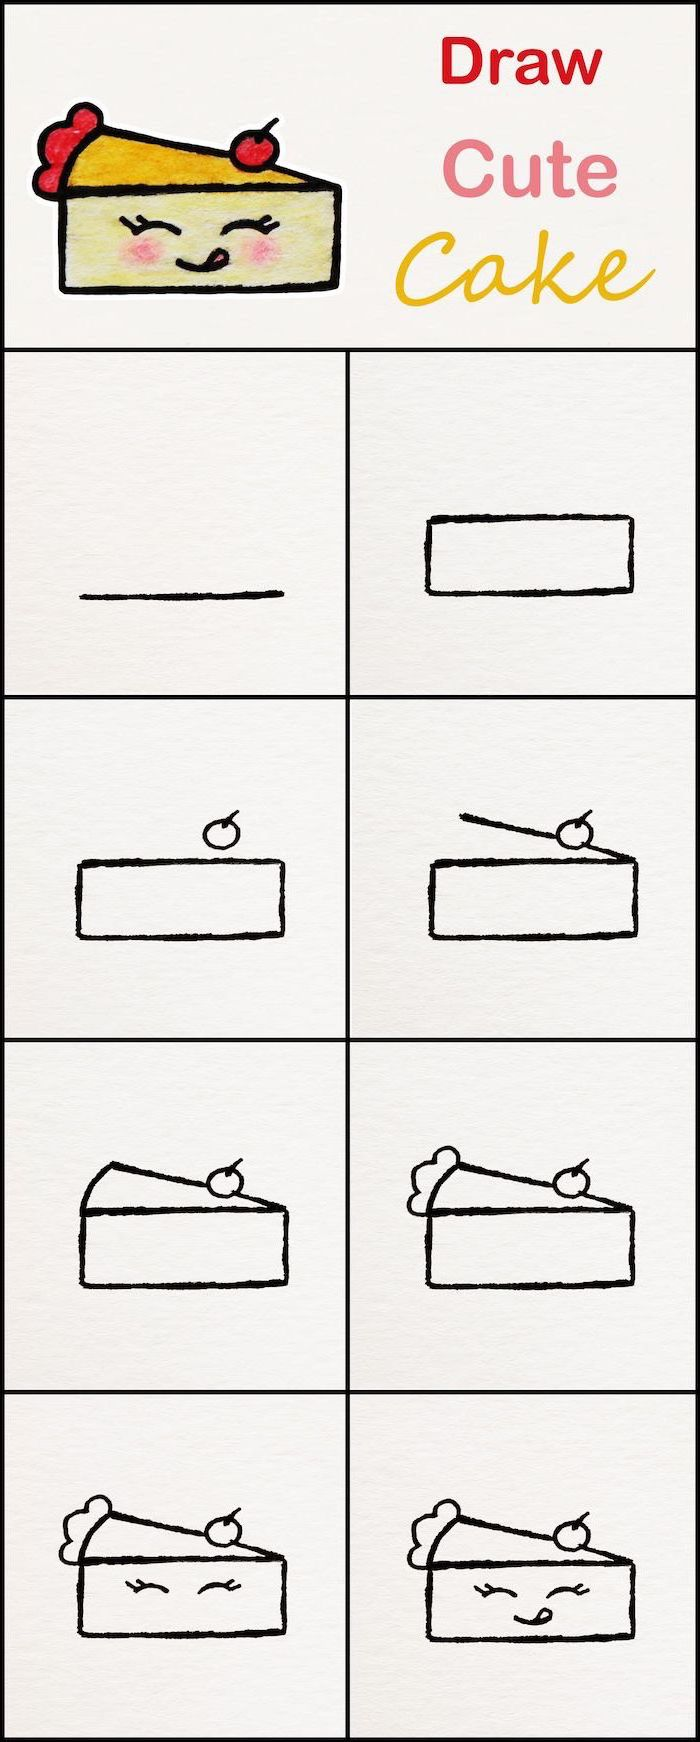 how to draw a cake slice, cool easy drawings, step by step diy tutorial, sketch on white background